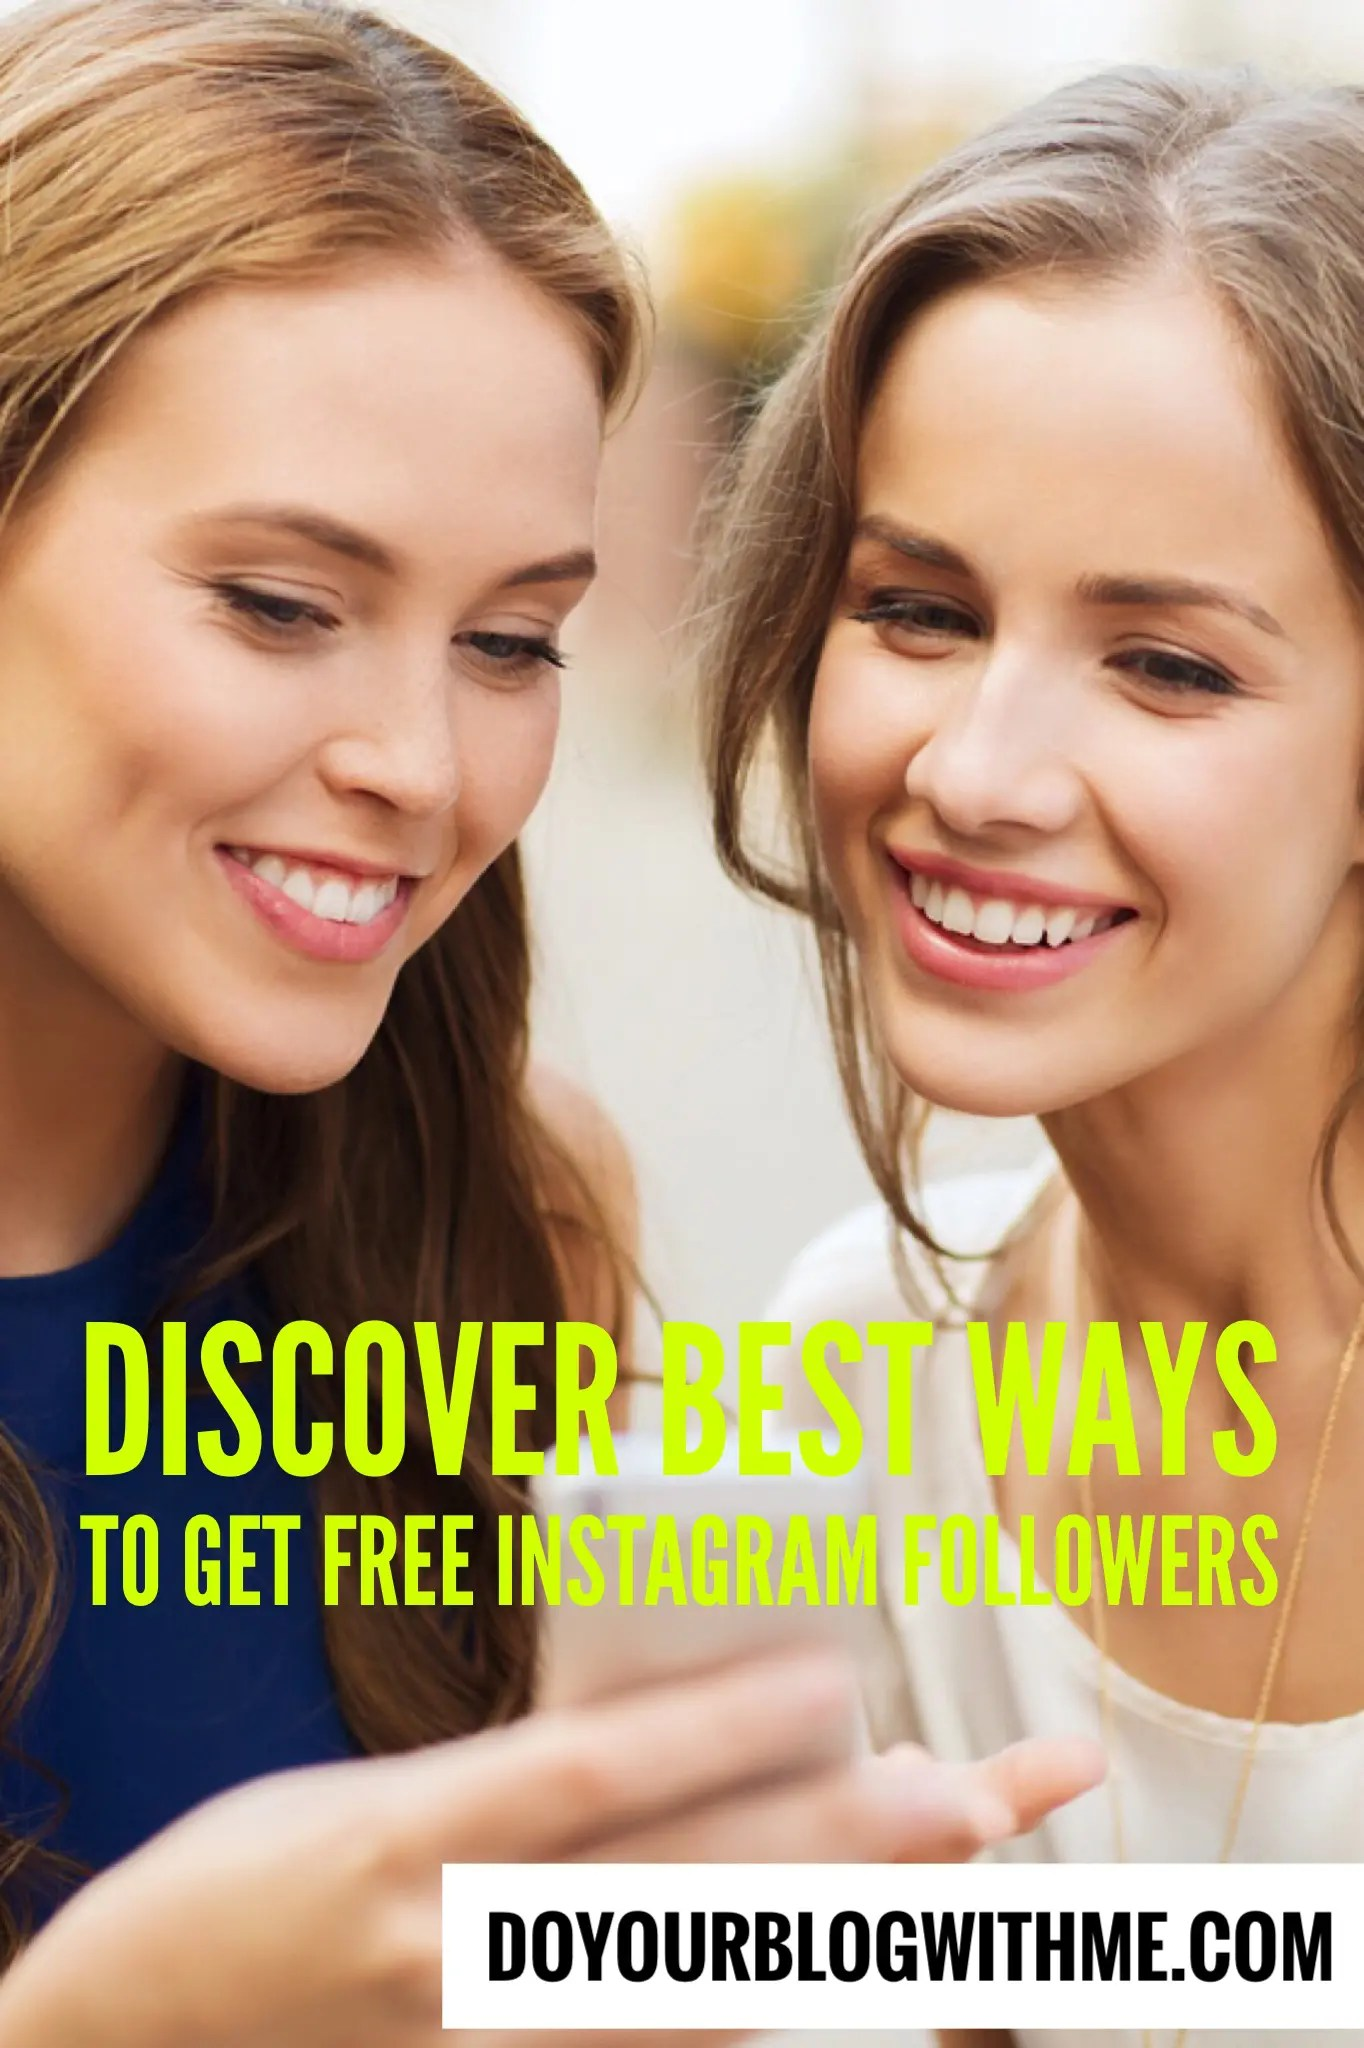 Discover Best Ways to Get Free Instagram Followers